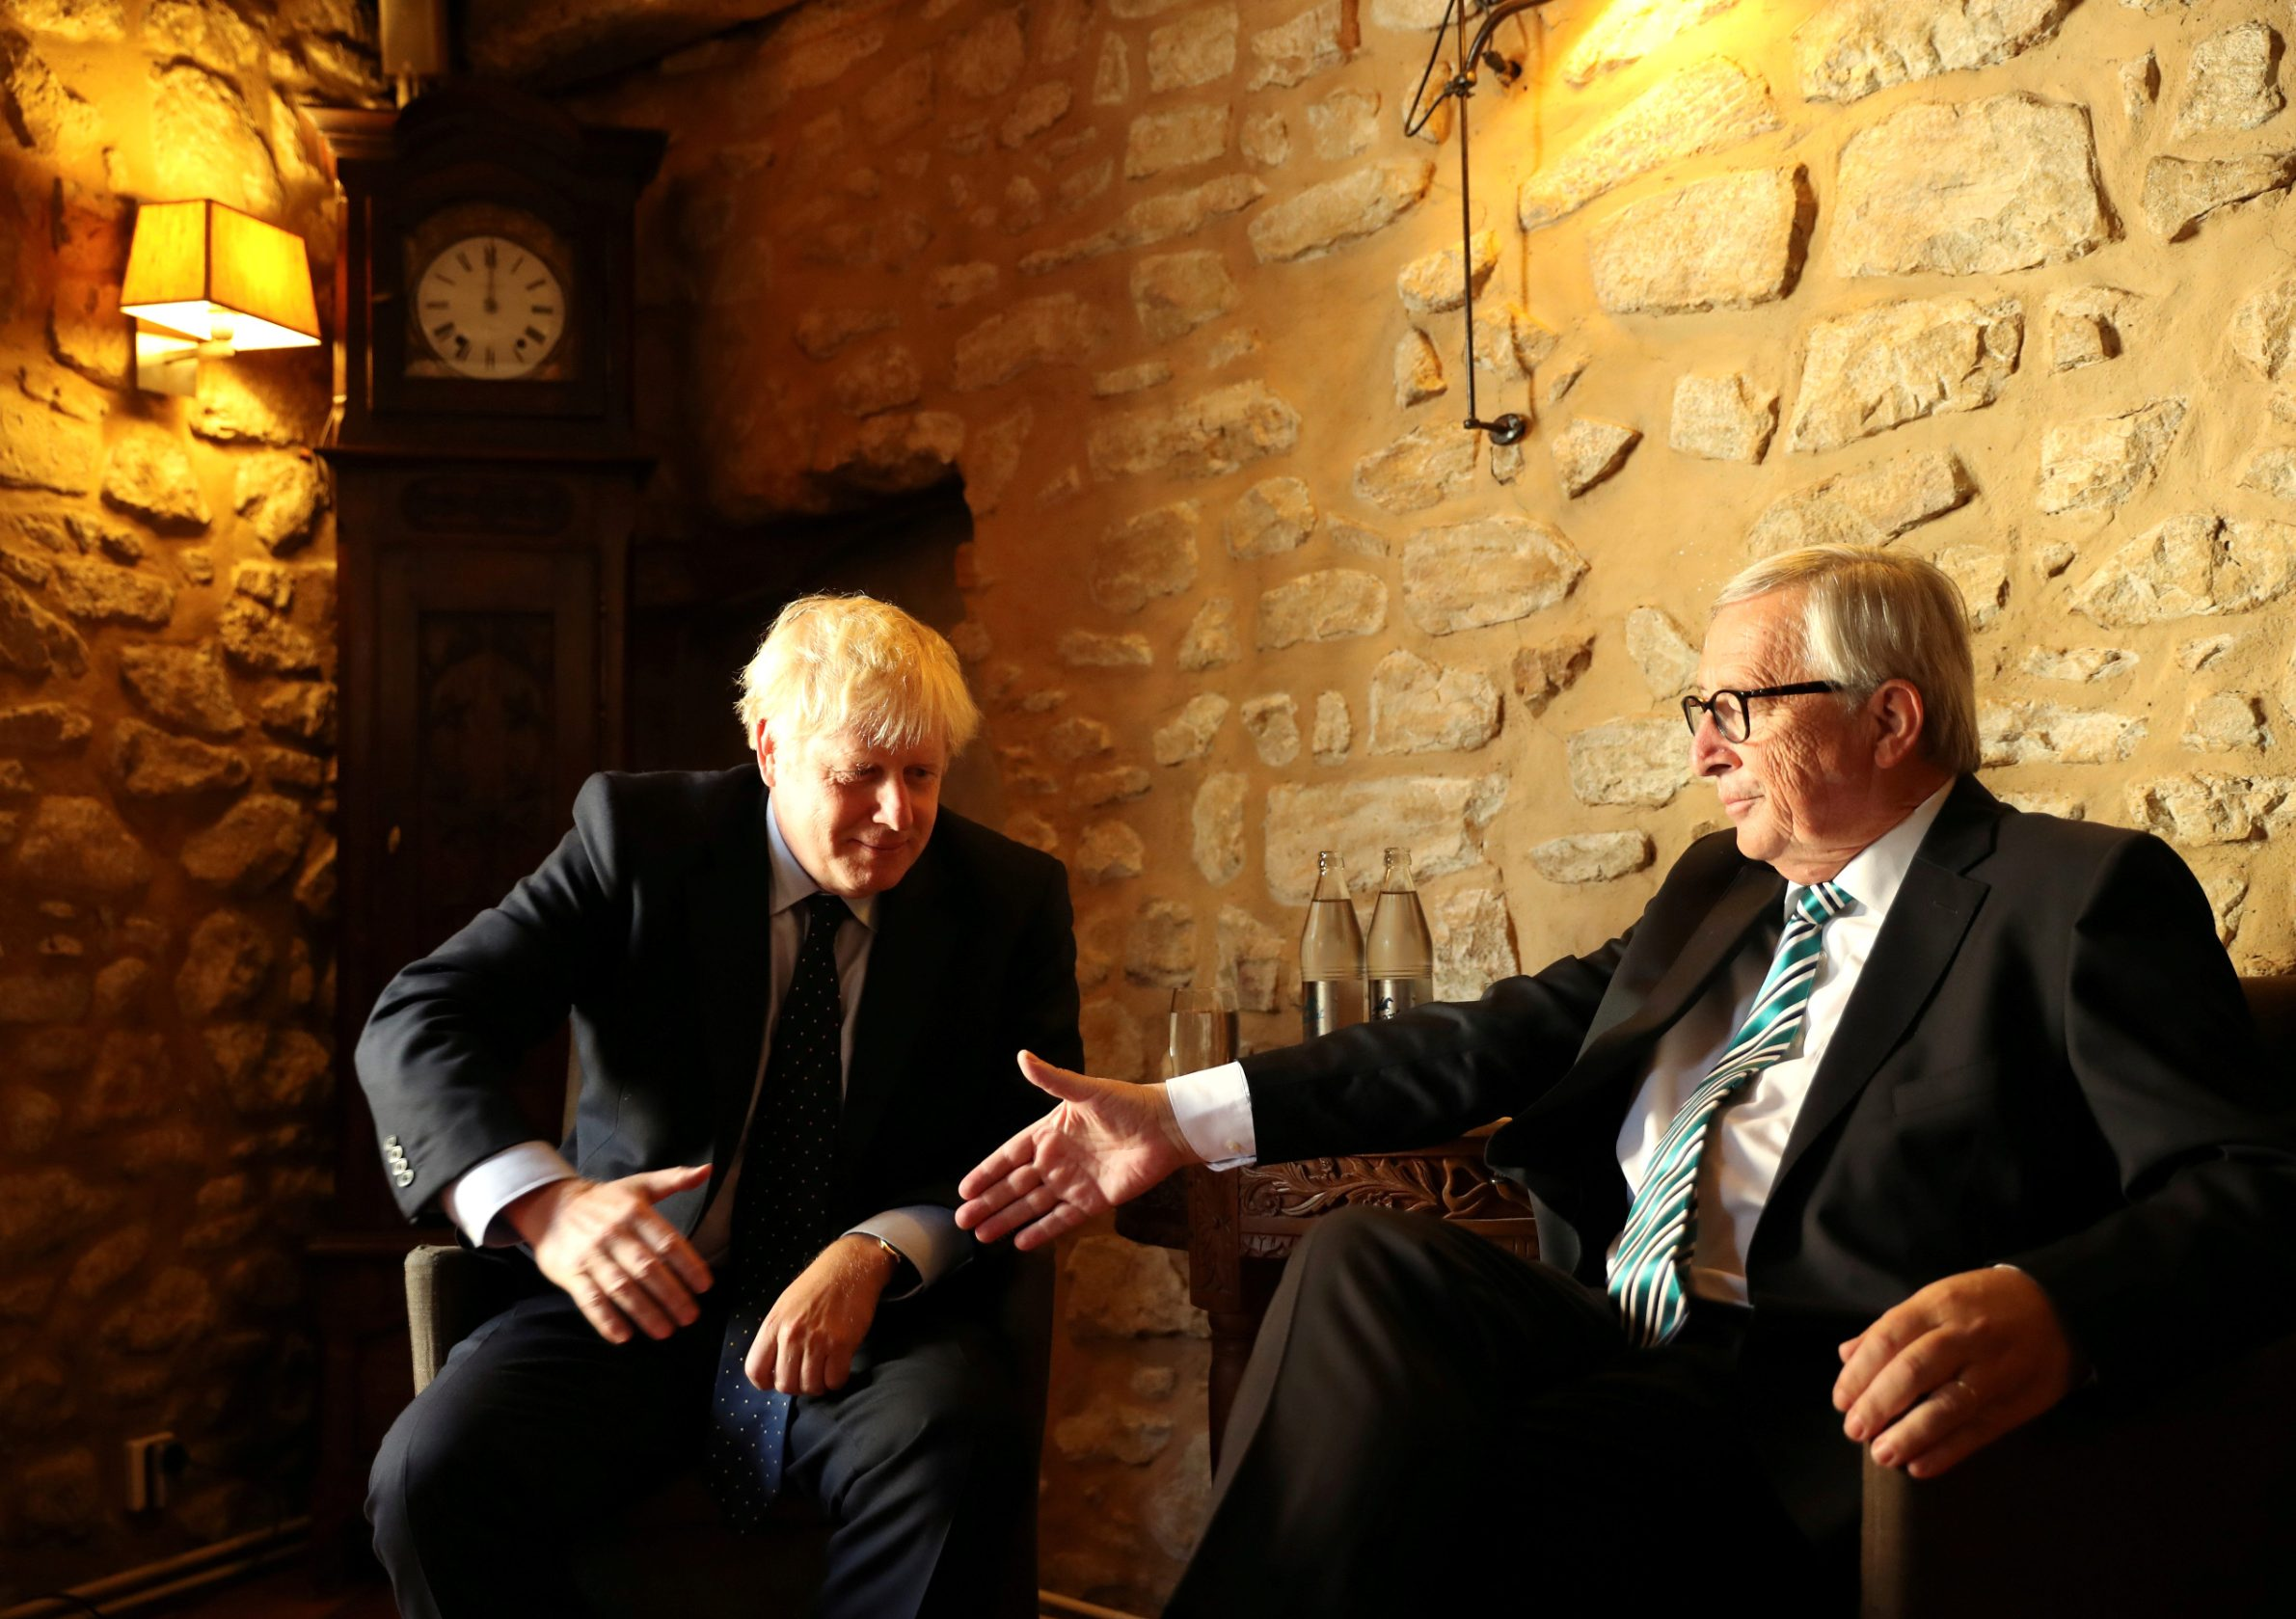 European Commission President Jean-Claude Juncker reaches out to shake hands with British Prime Minister Boris Johnson prior to a meeting at a restaurant in Luxembourg September 16, 2019. Francisco Seco/Pool via REUTERS